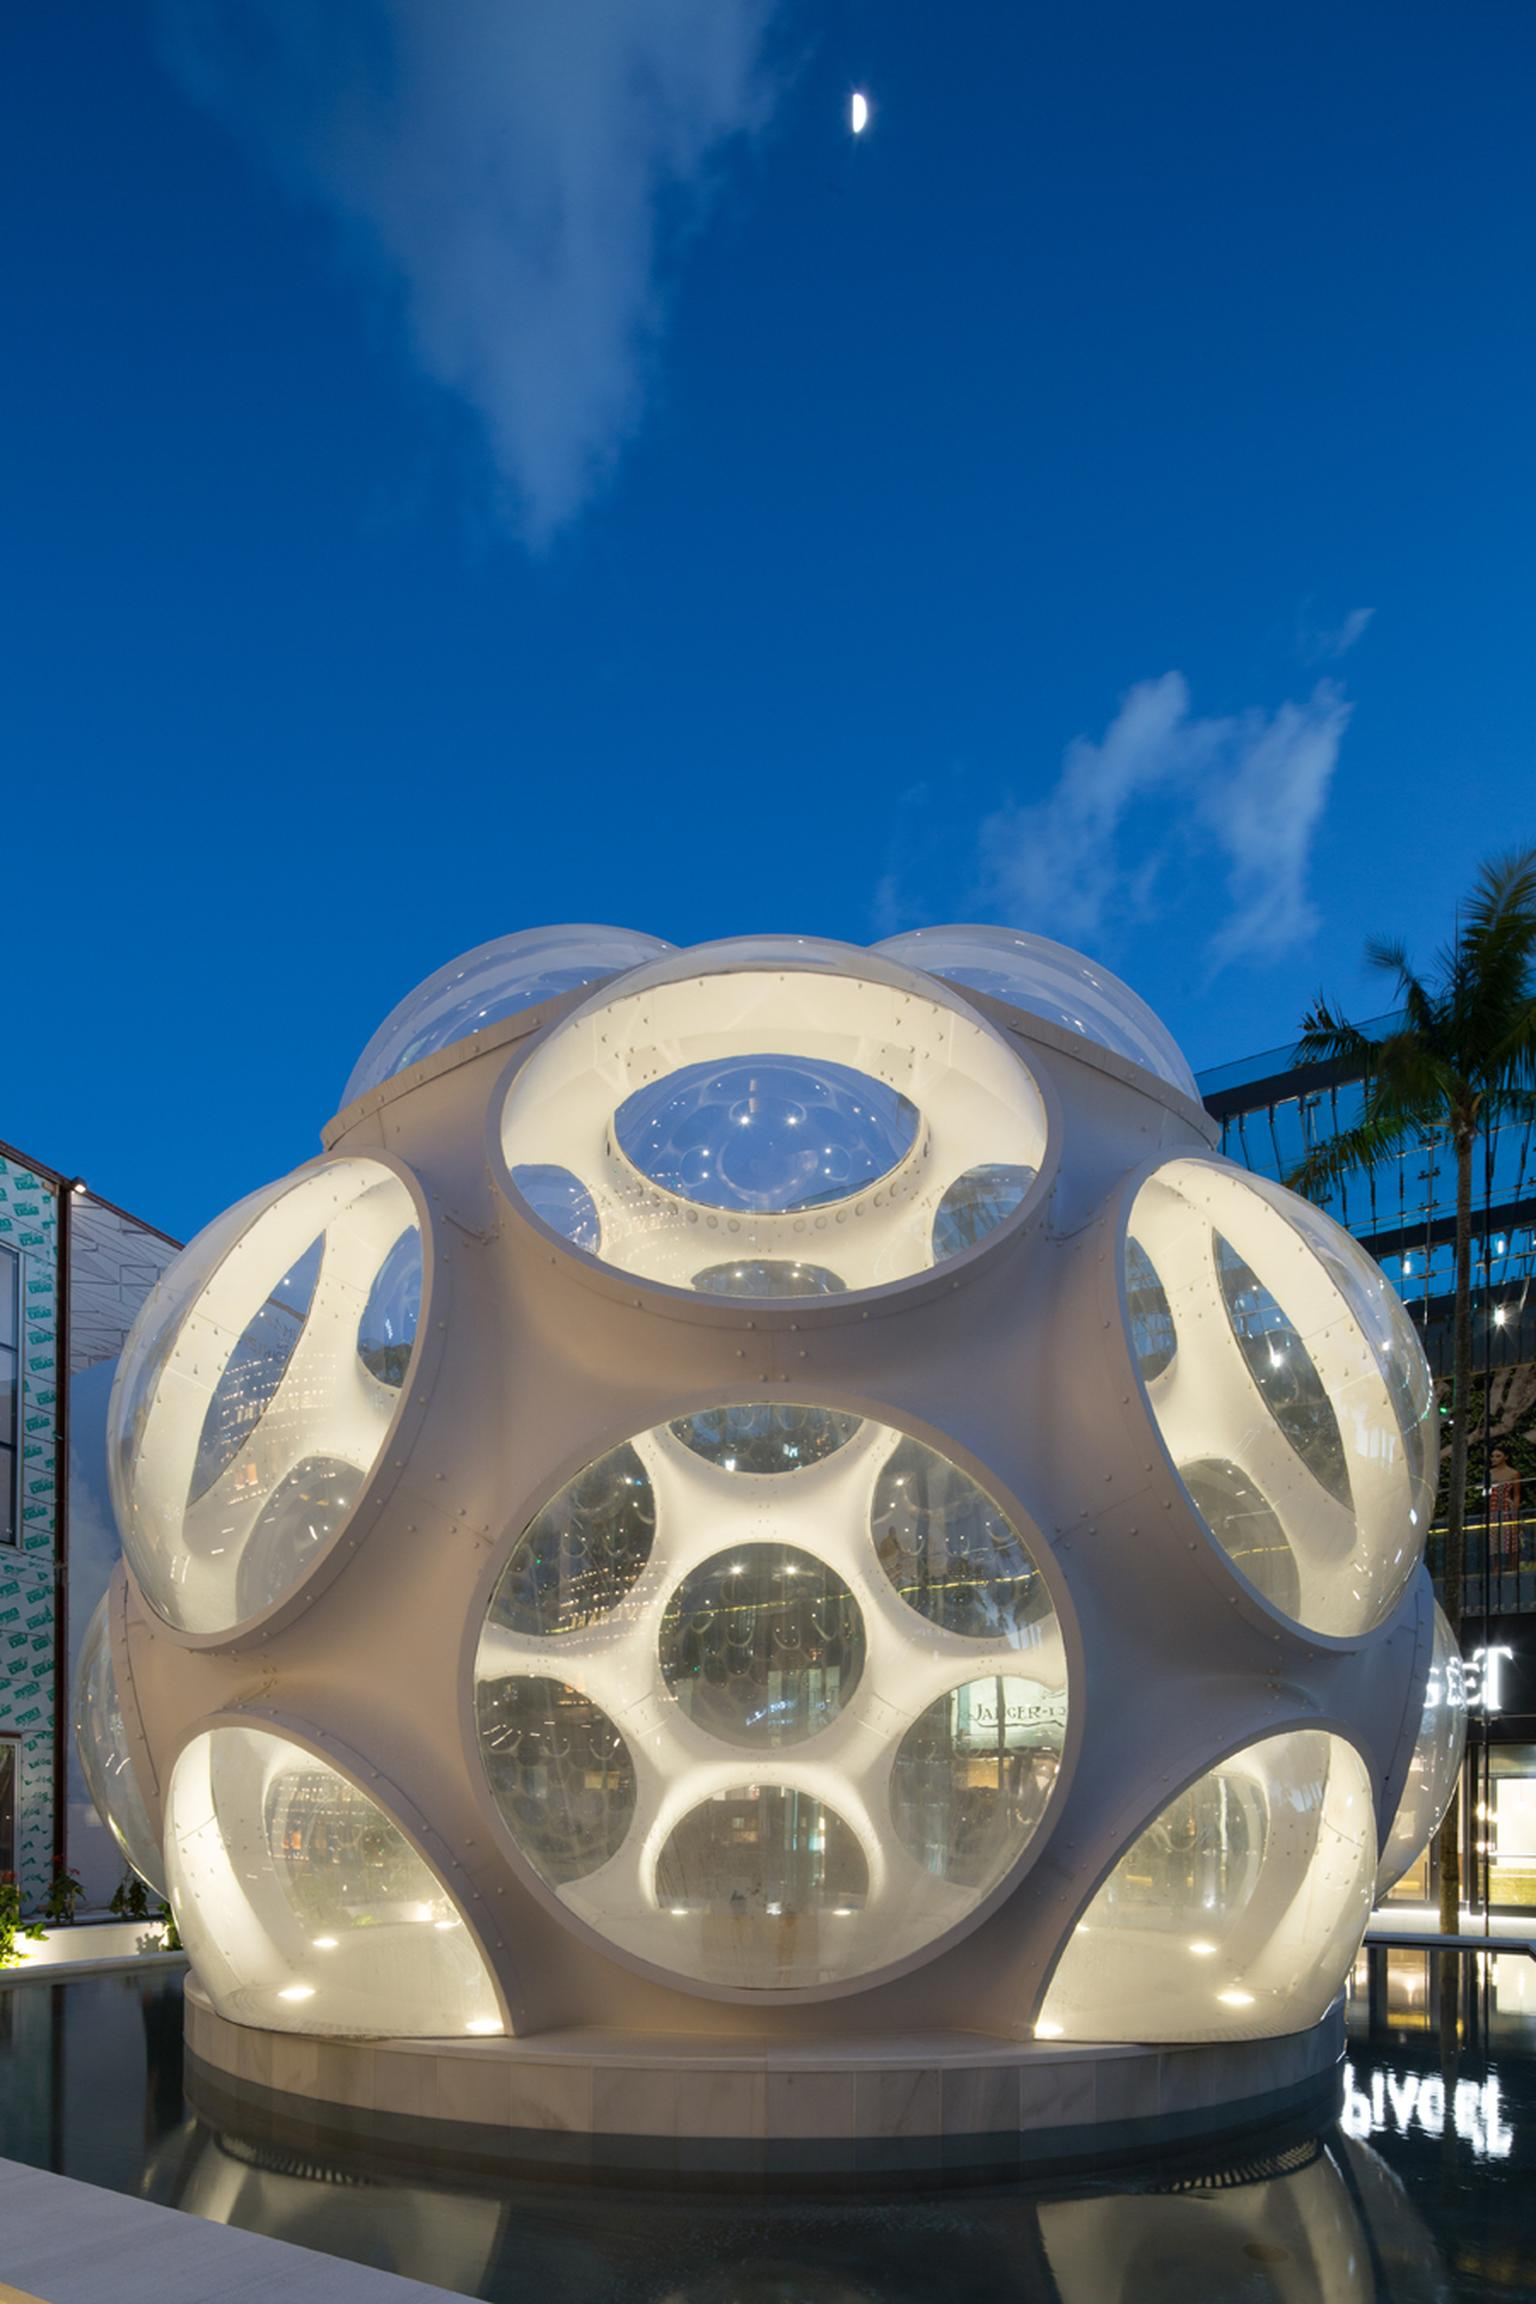 Almost 50 years after Buckminster Fuller designed the Fly's Eye Dome, Craig Robins, the man behind the reinvention of the Miami Design District, acquired a 24ft prototype and, in 2012, he had it installed as a centerpiece of the district's re-design.